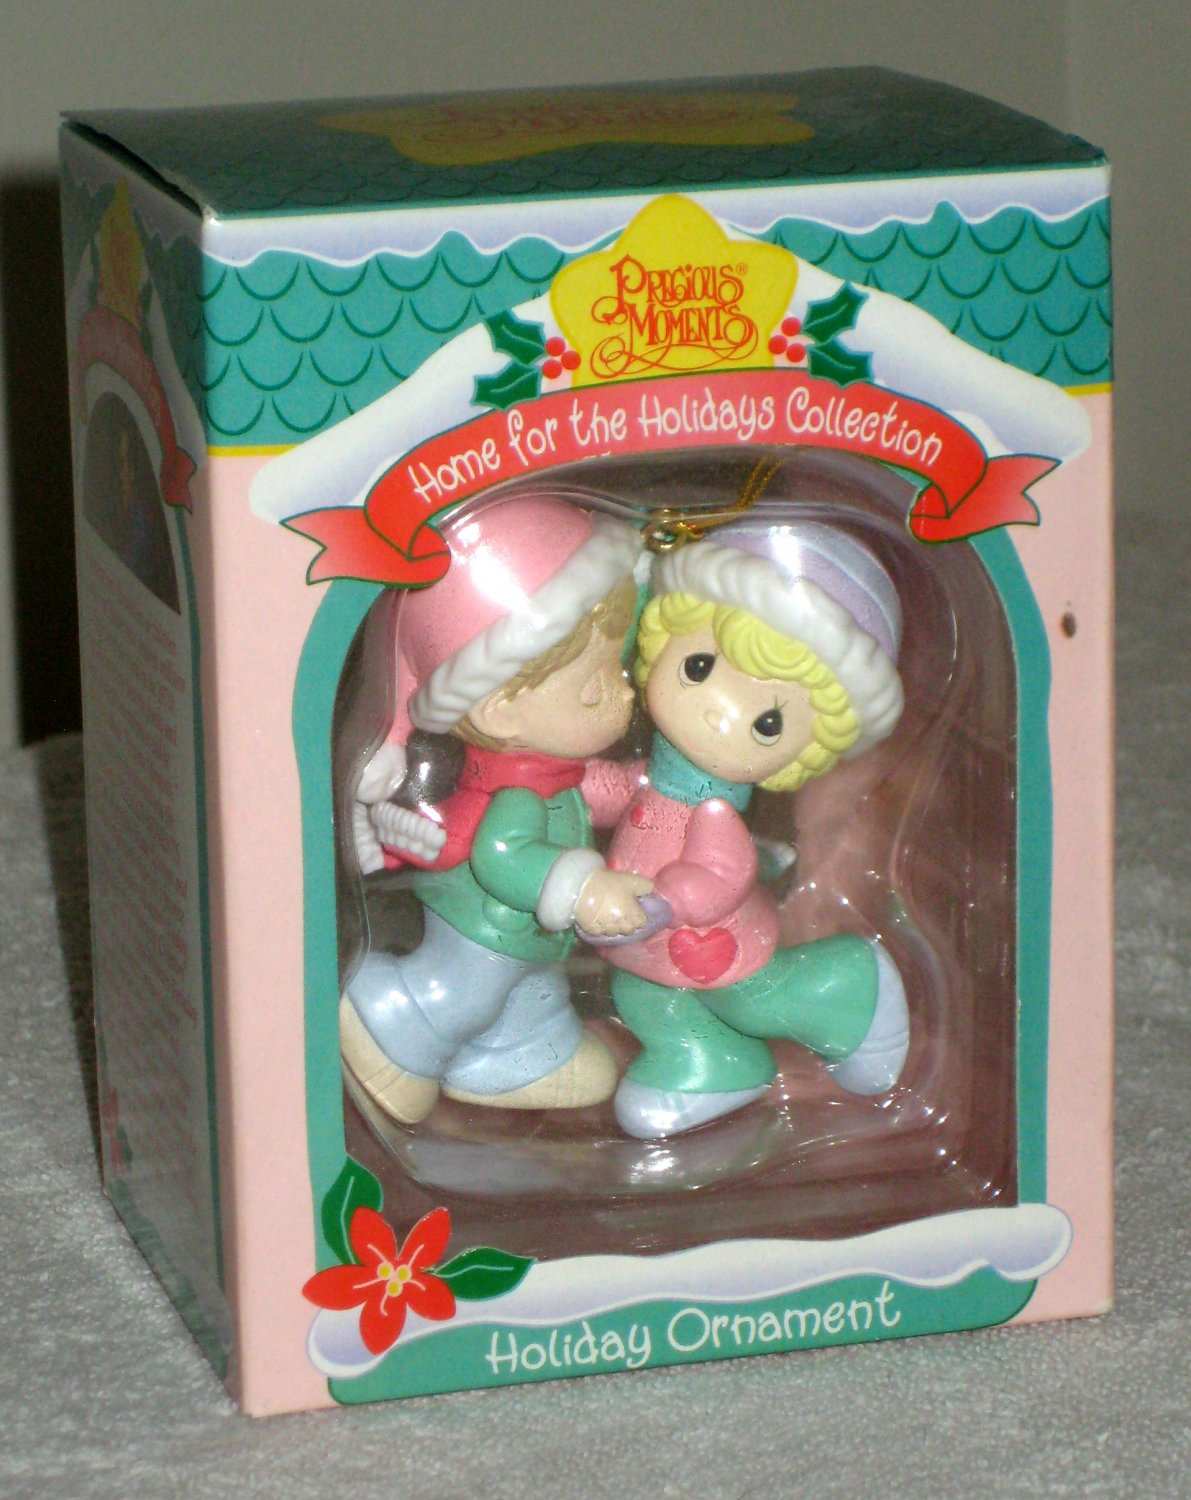 precious moments christmas tree ornament 266094 home for the holidays collection enesco boy girl nib - Precious Moments Christmas Ornaments